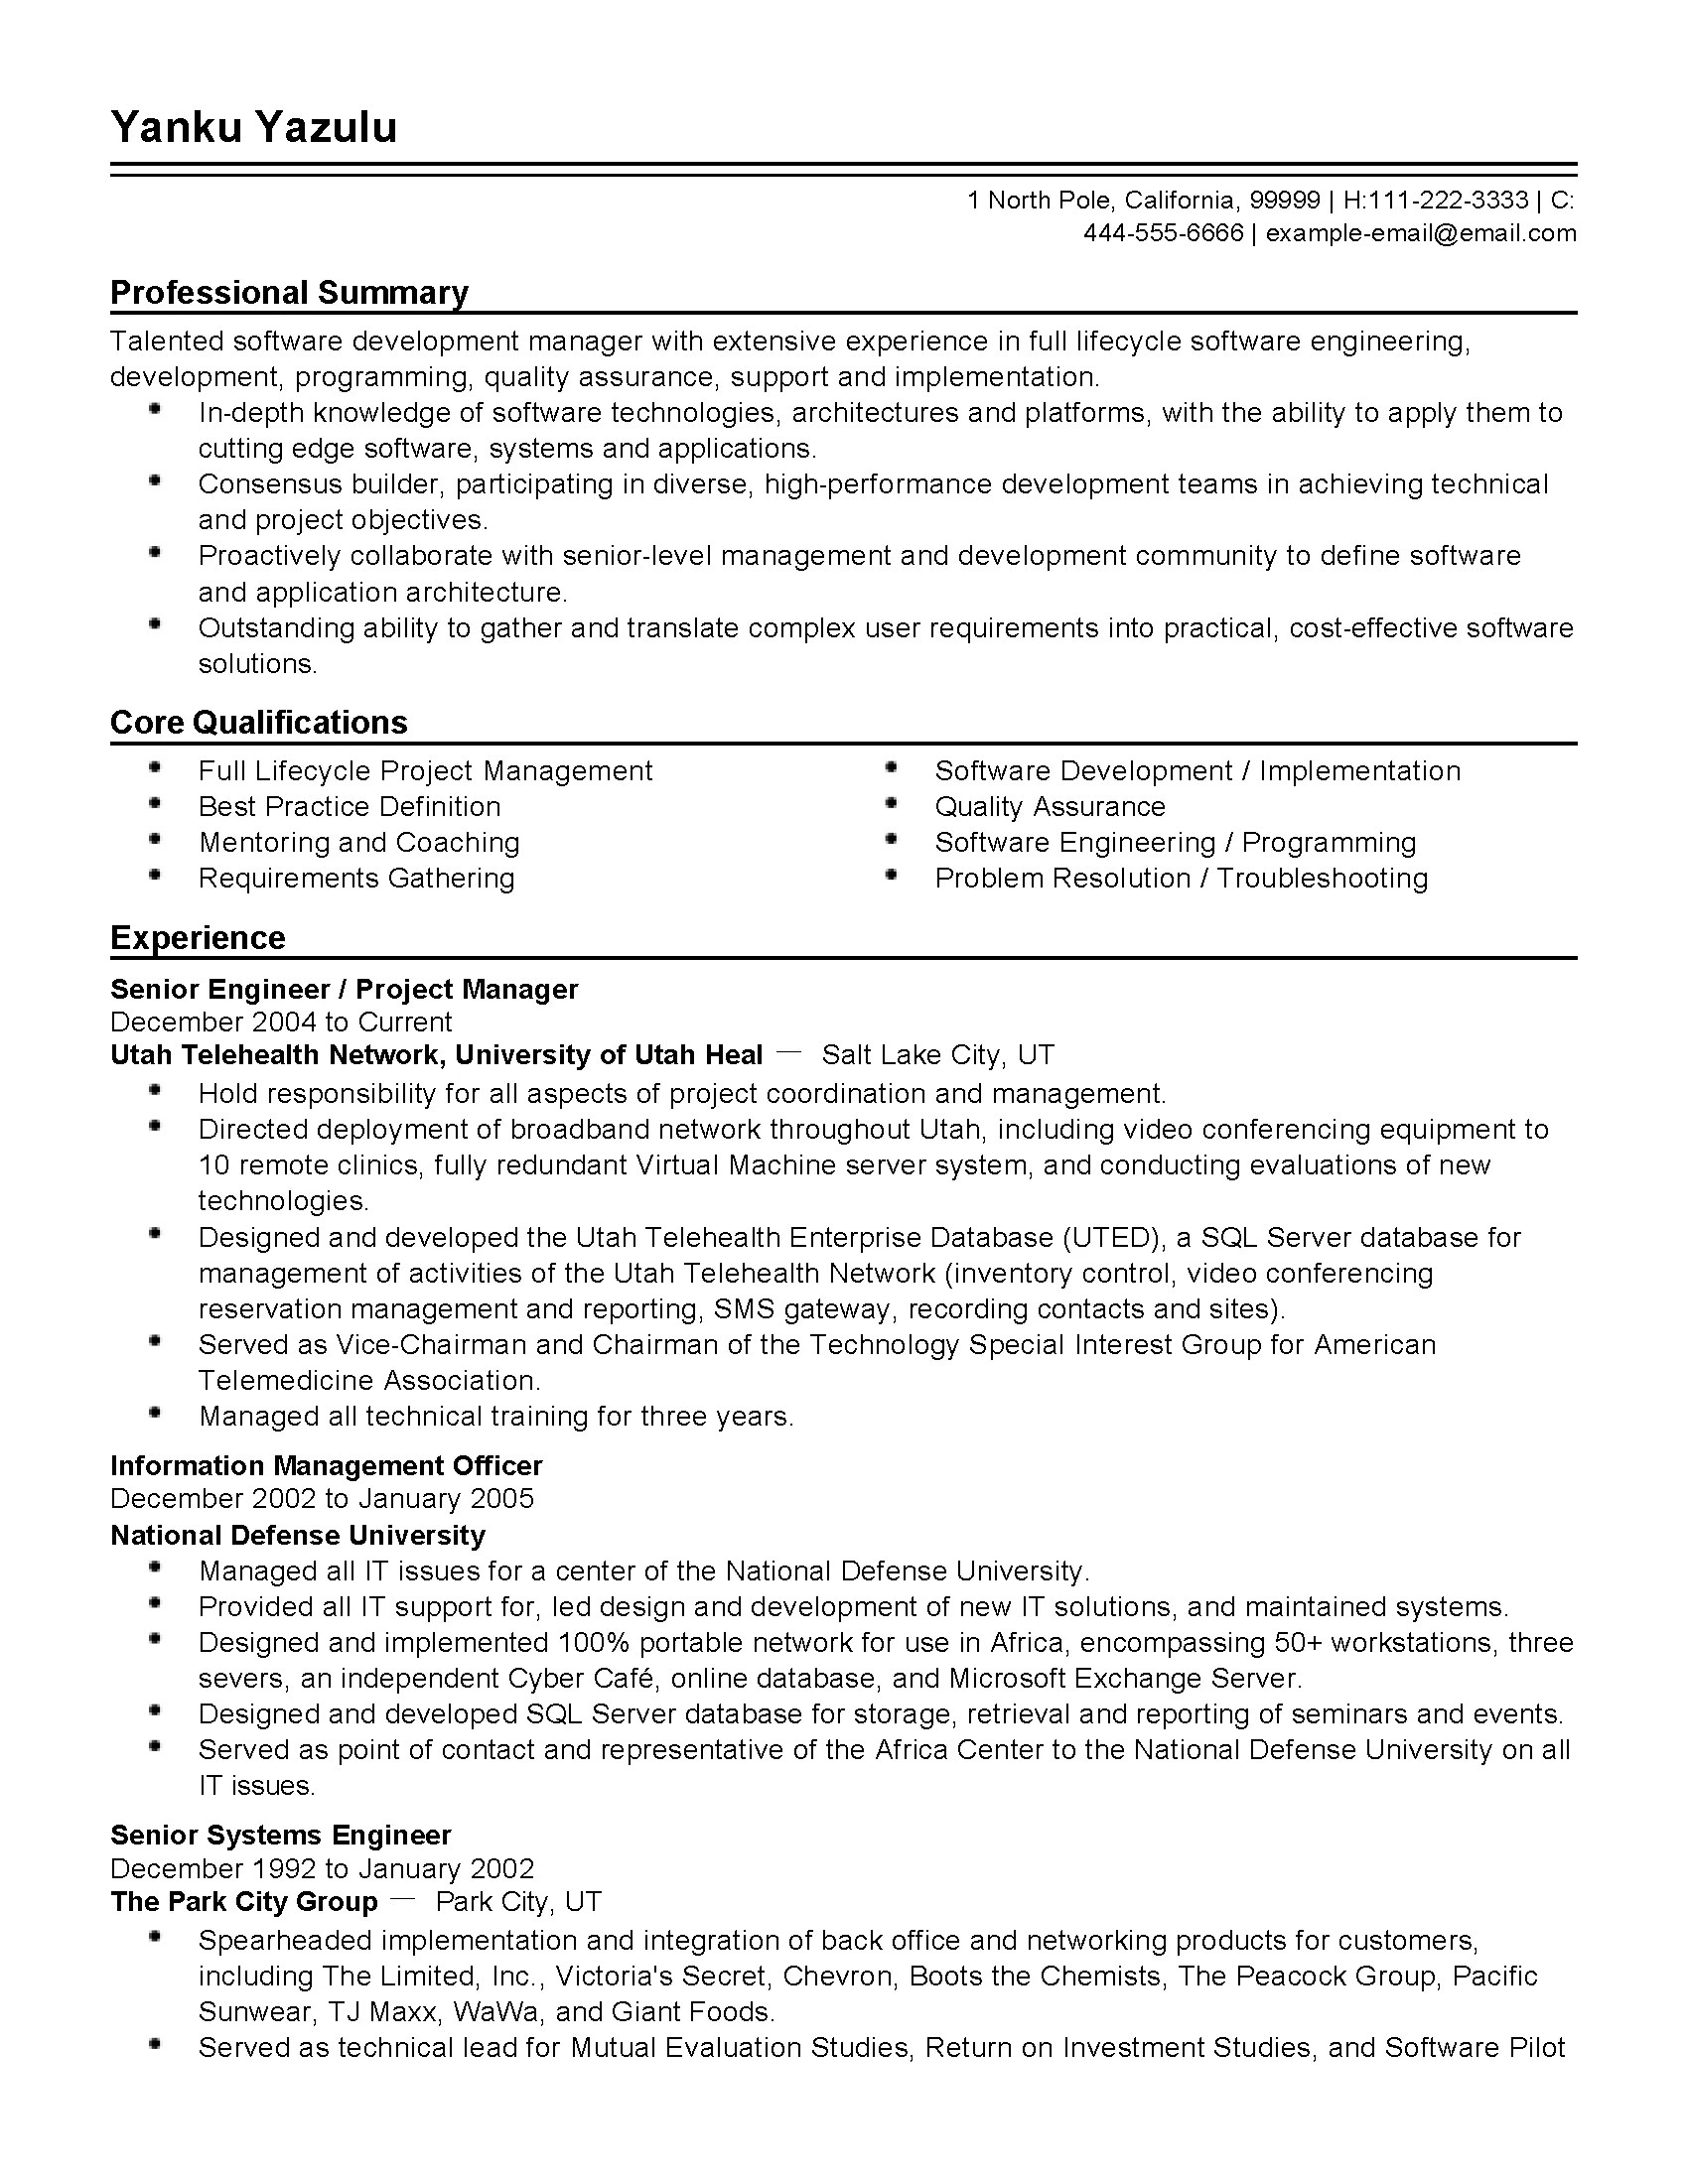 Professional Examples Of Resumes Professional Senior Engineer Templates To Showcase Your